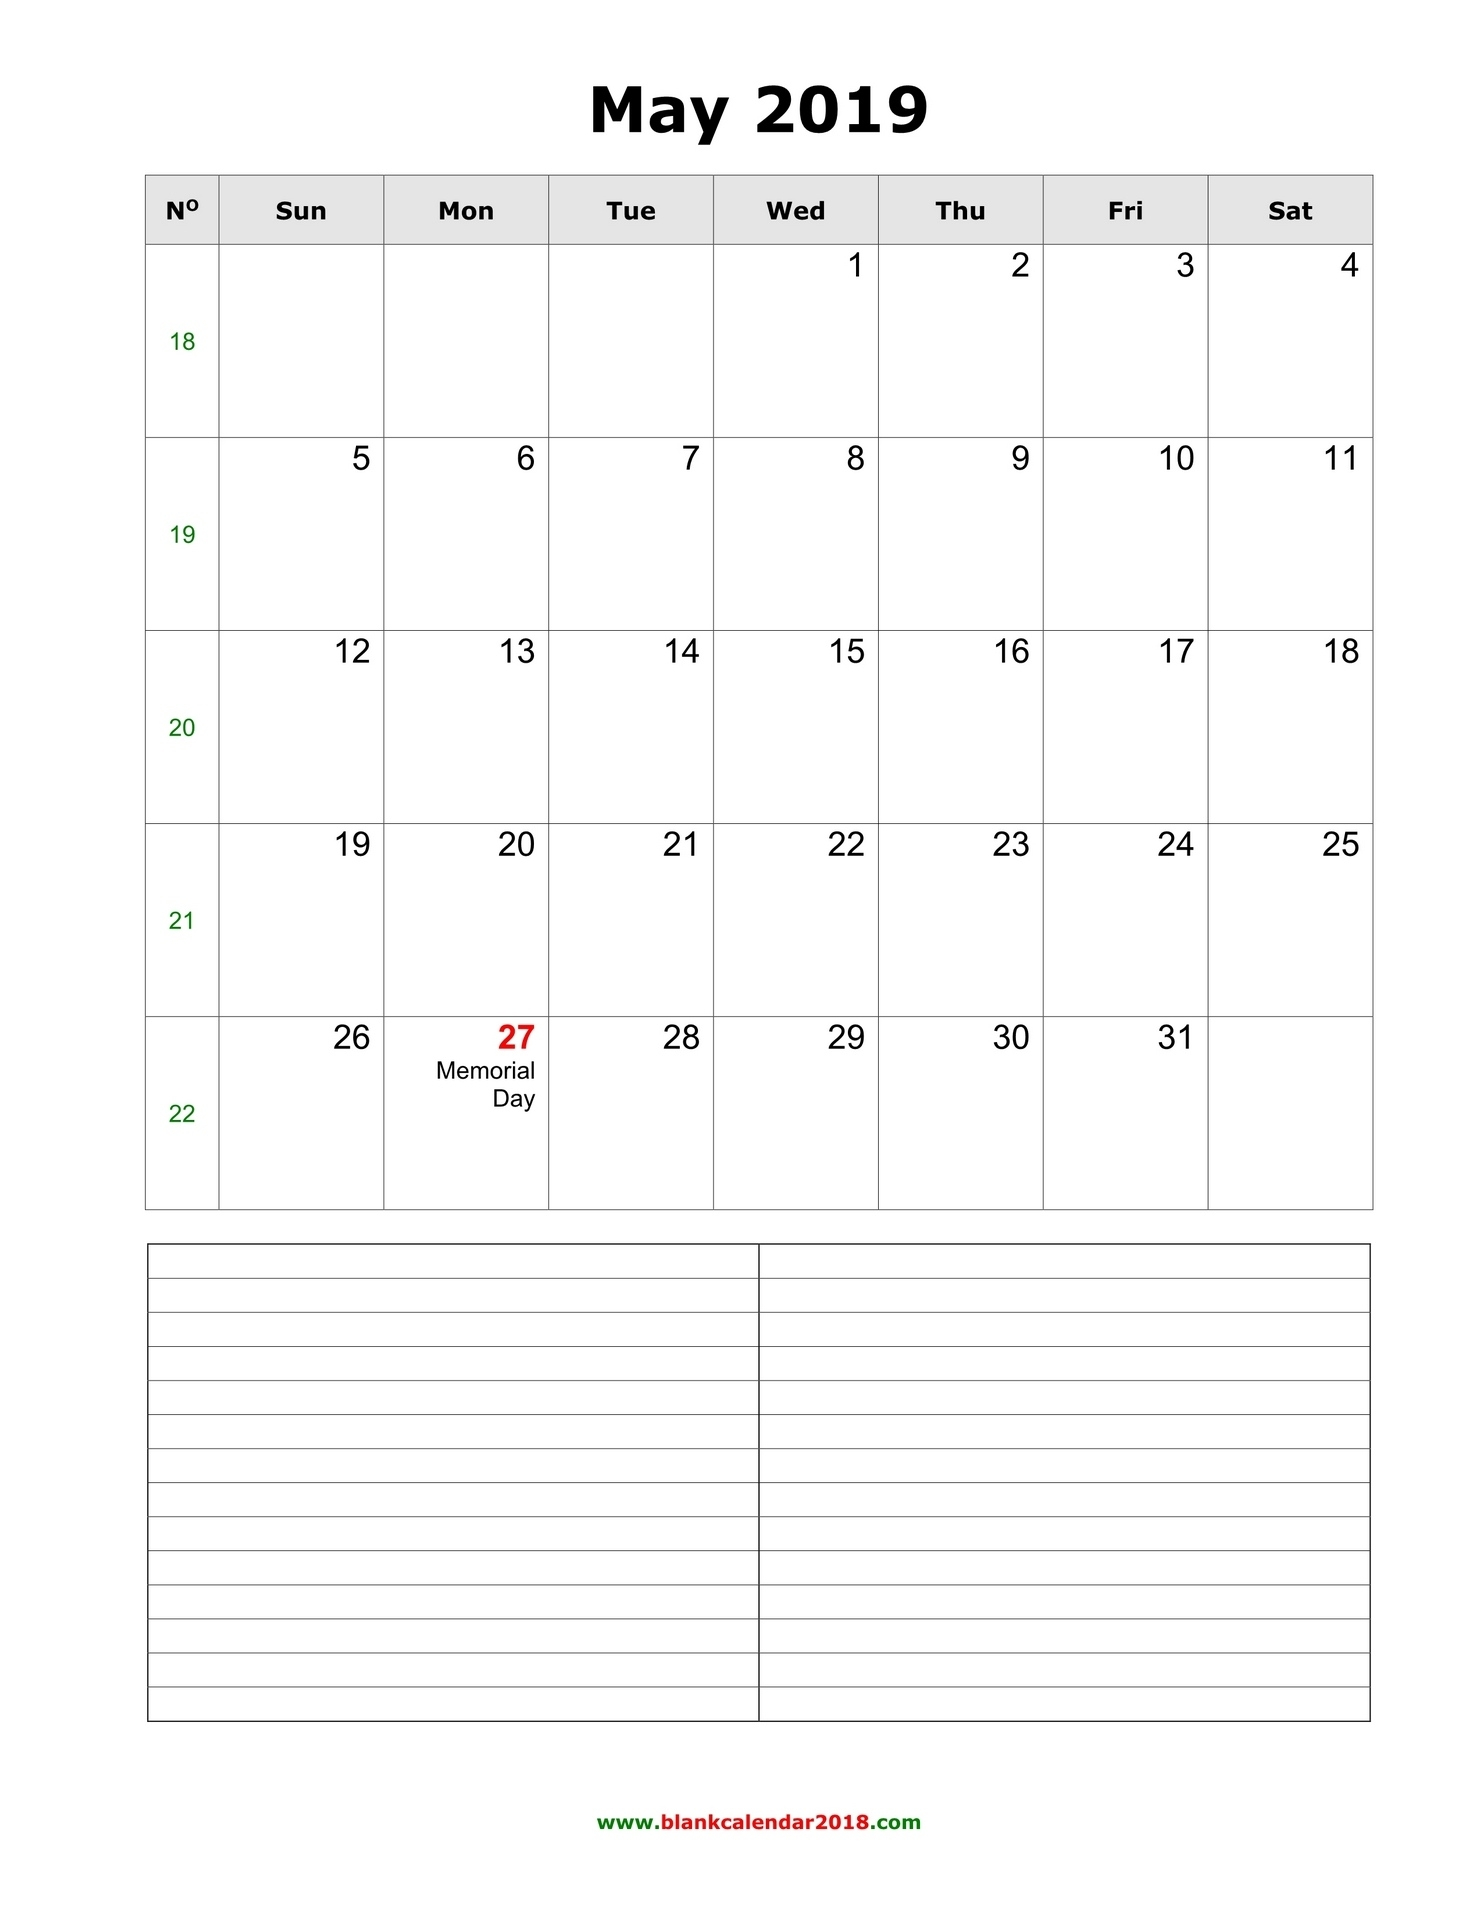 Blank Calendar For May 2019 Calendar Template With Room For Notes